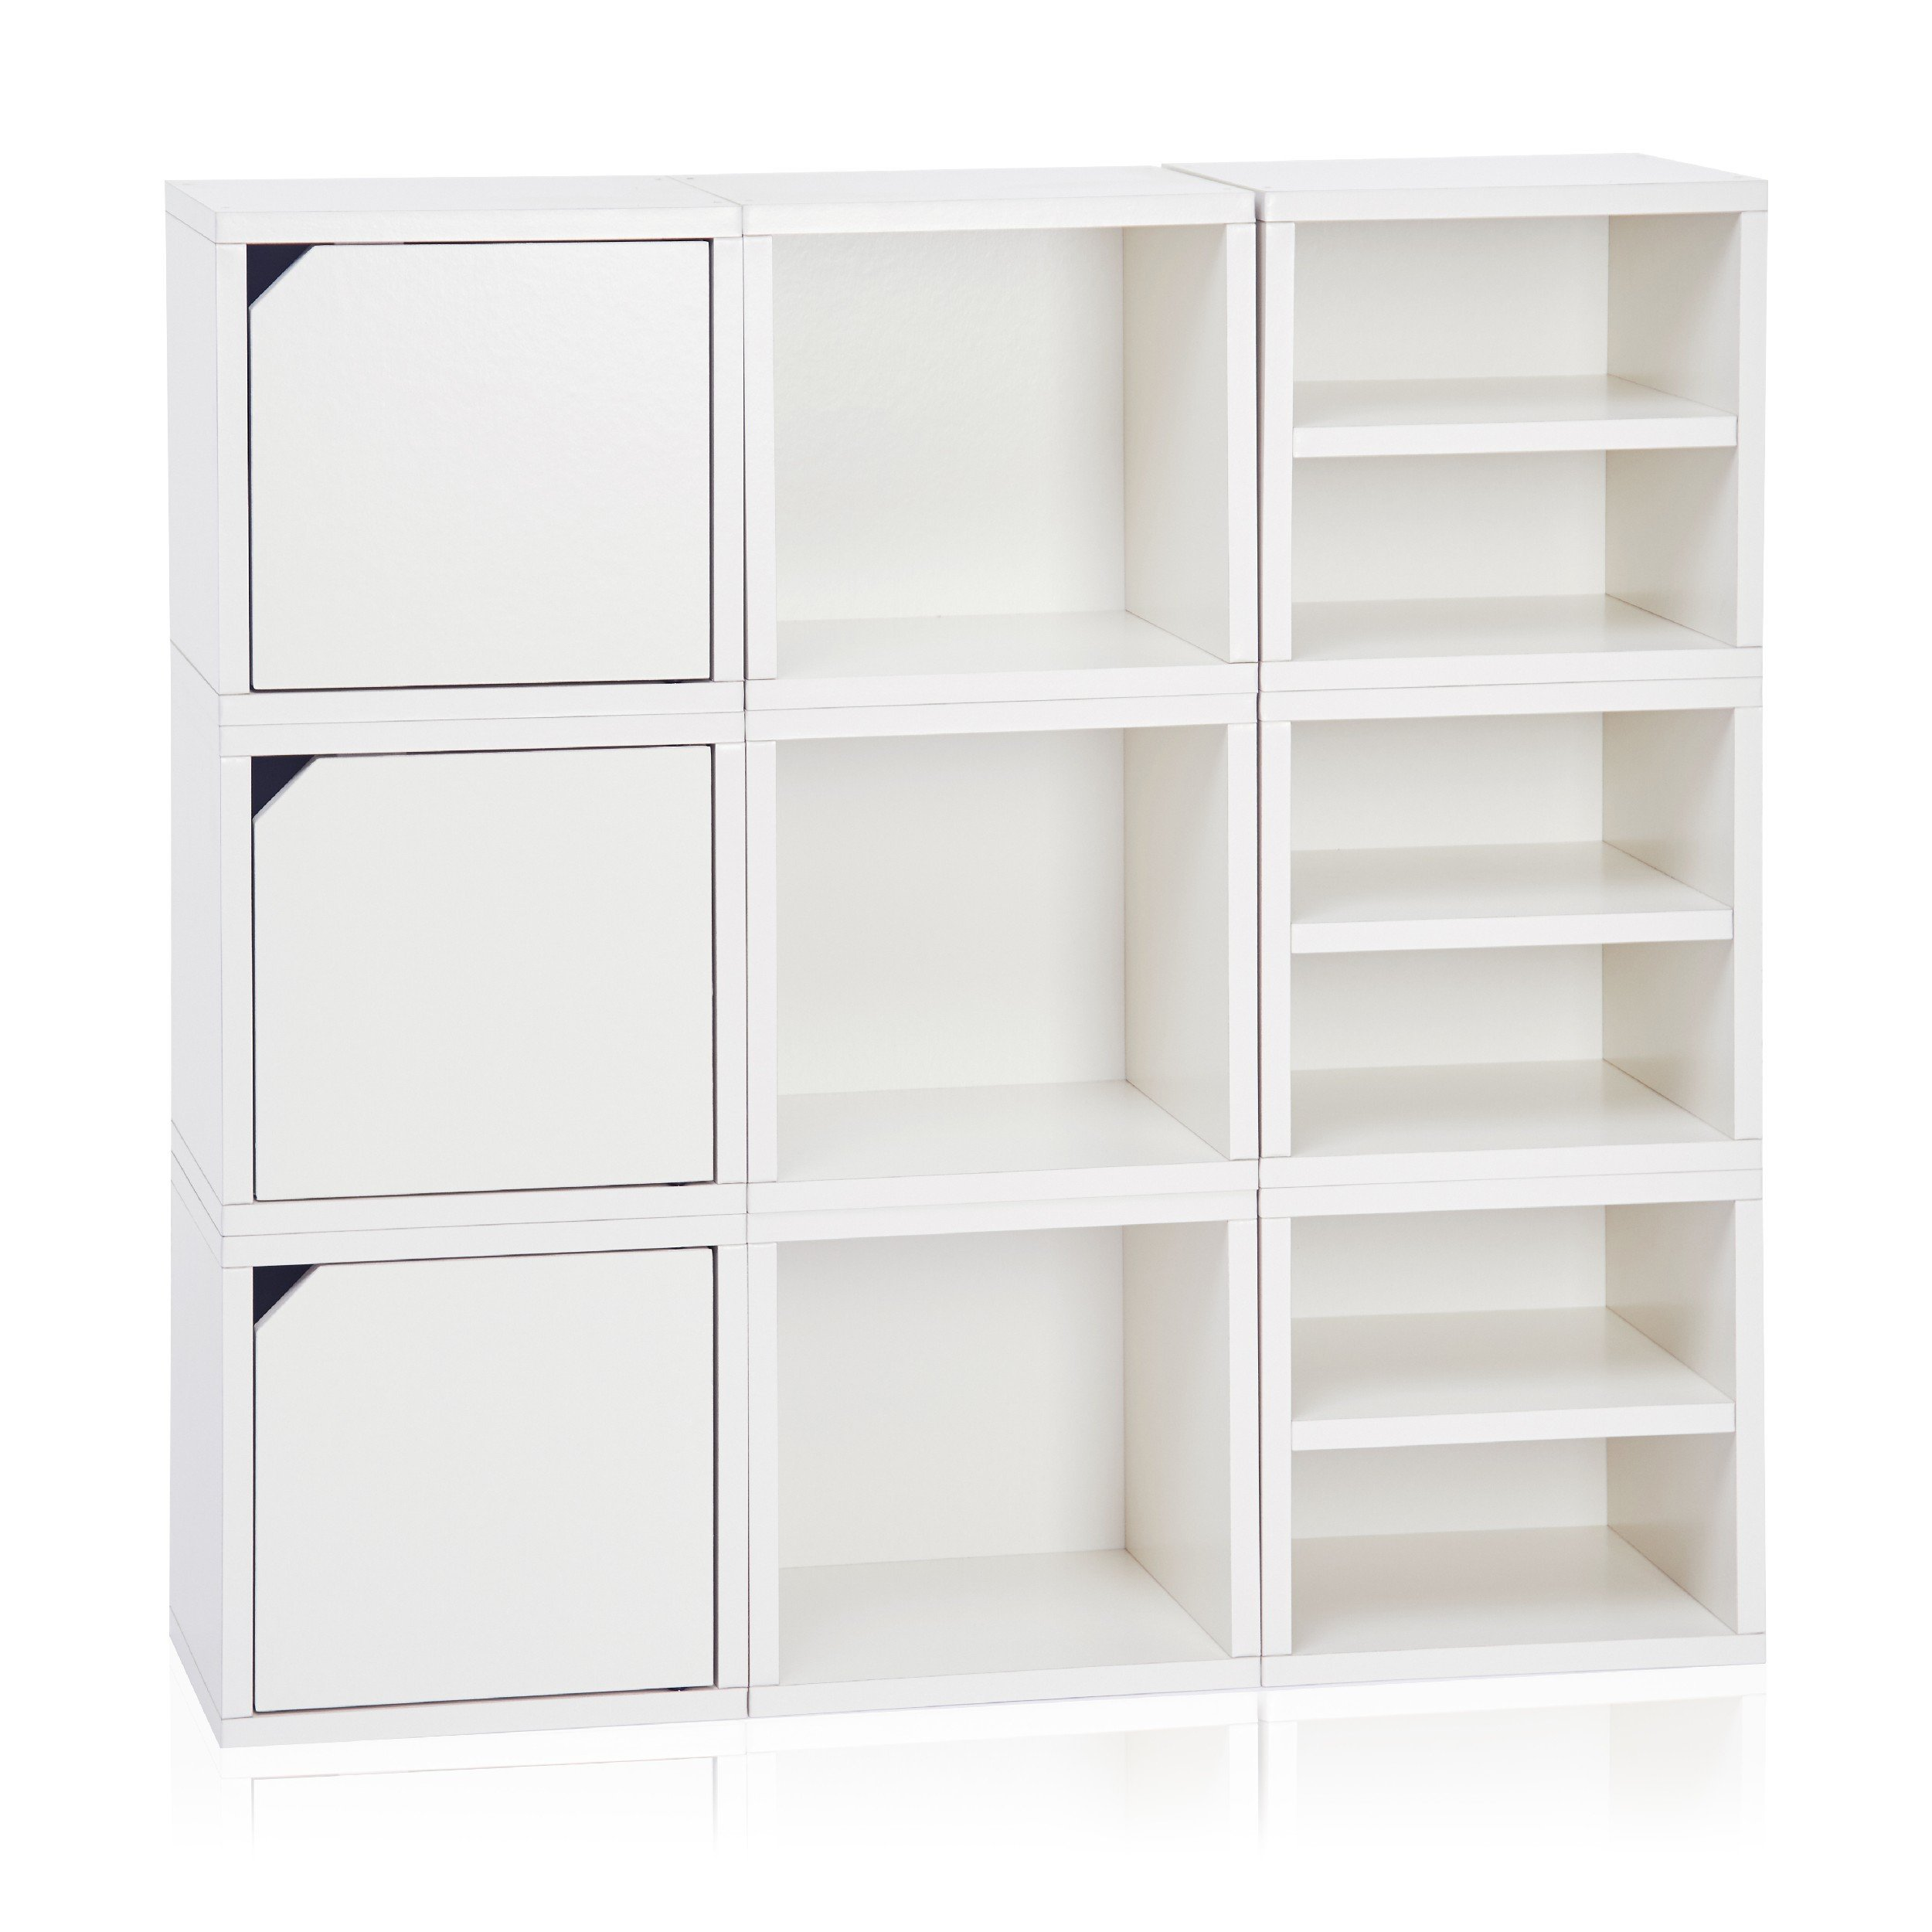 Connect 9 Cube White Pre Order Ships 10 26 In 2020 Cube Storage Shelves Cube Storage Modular Storage